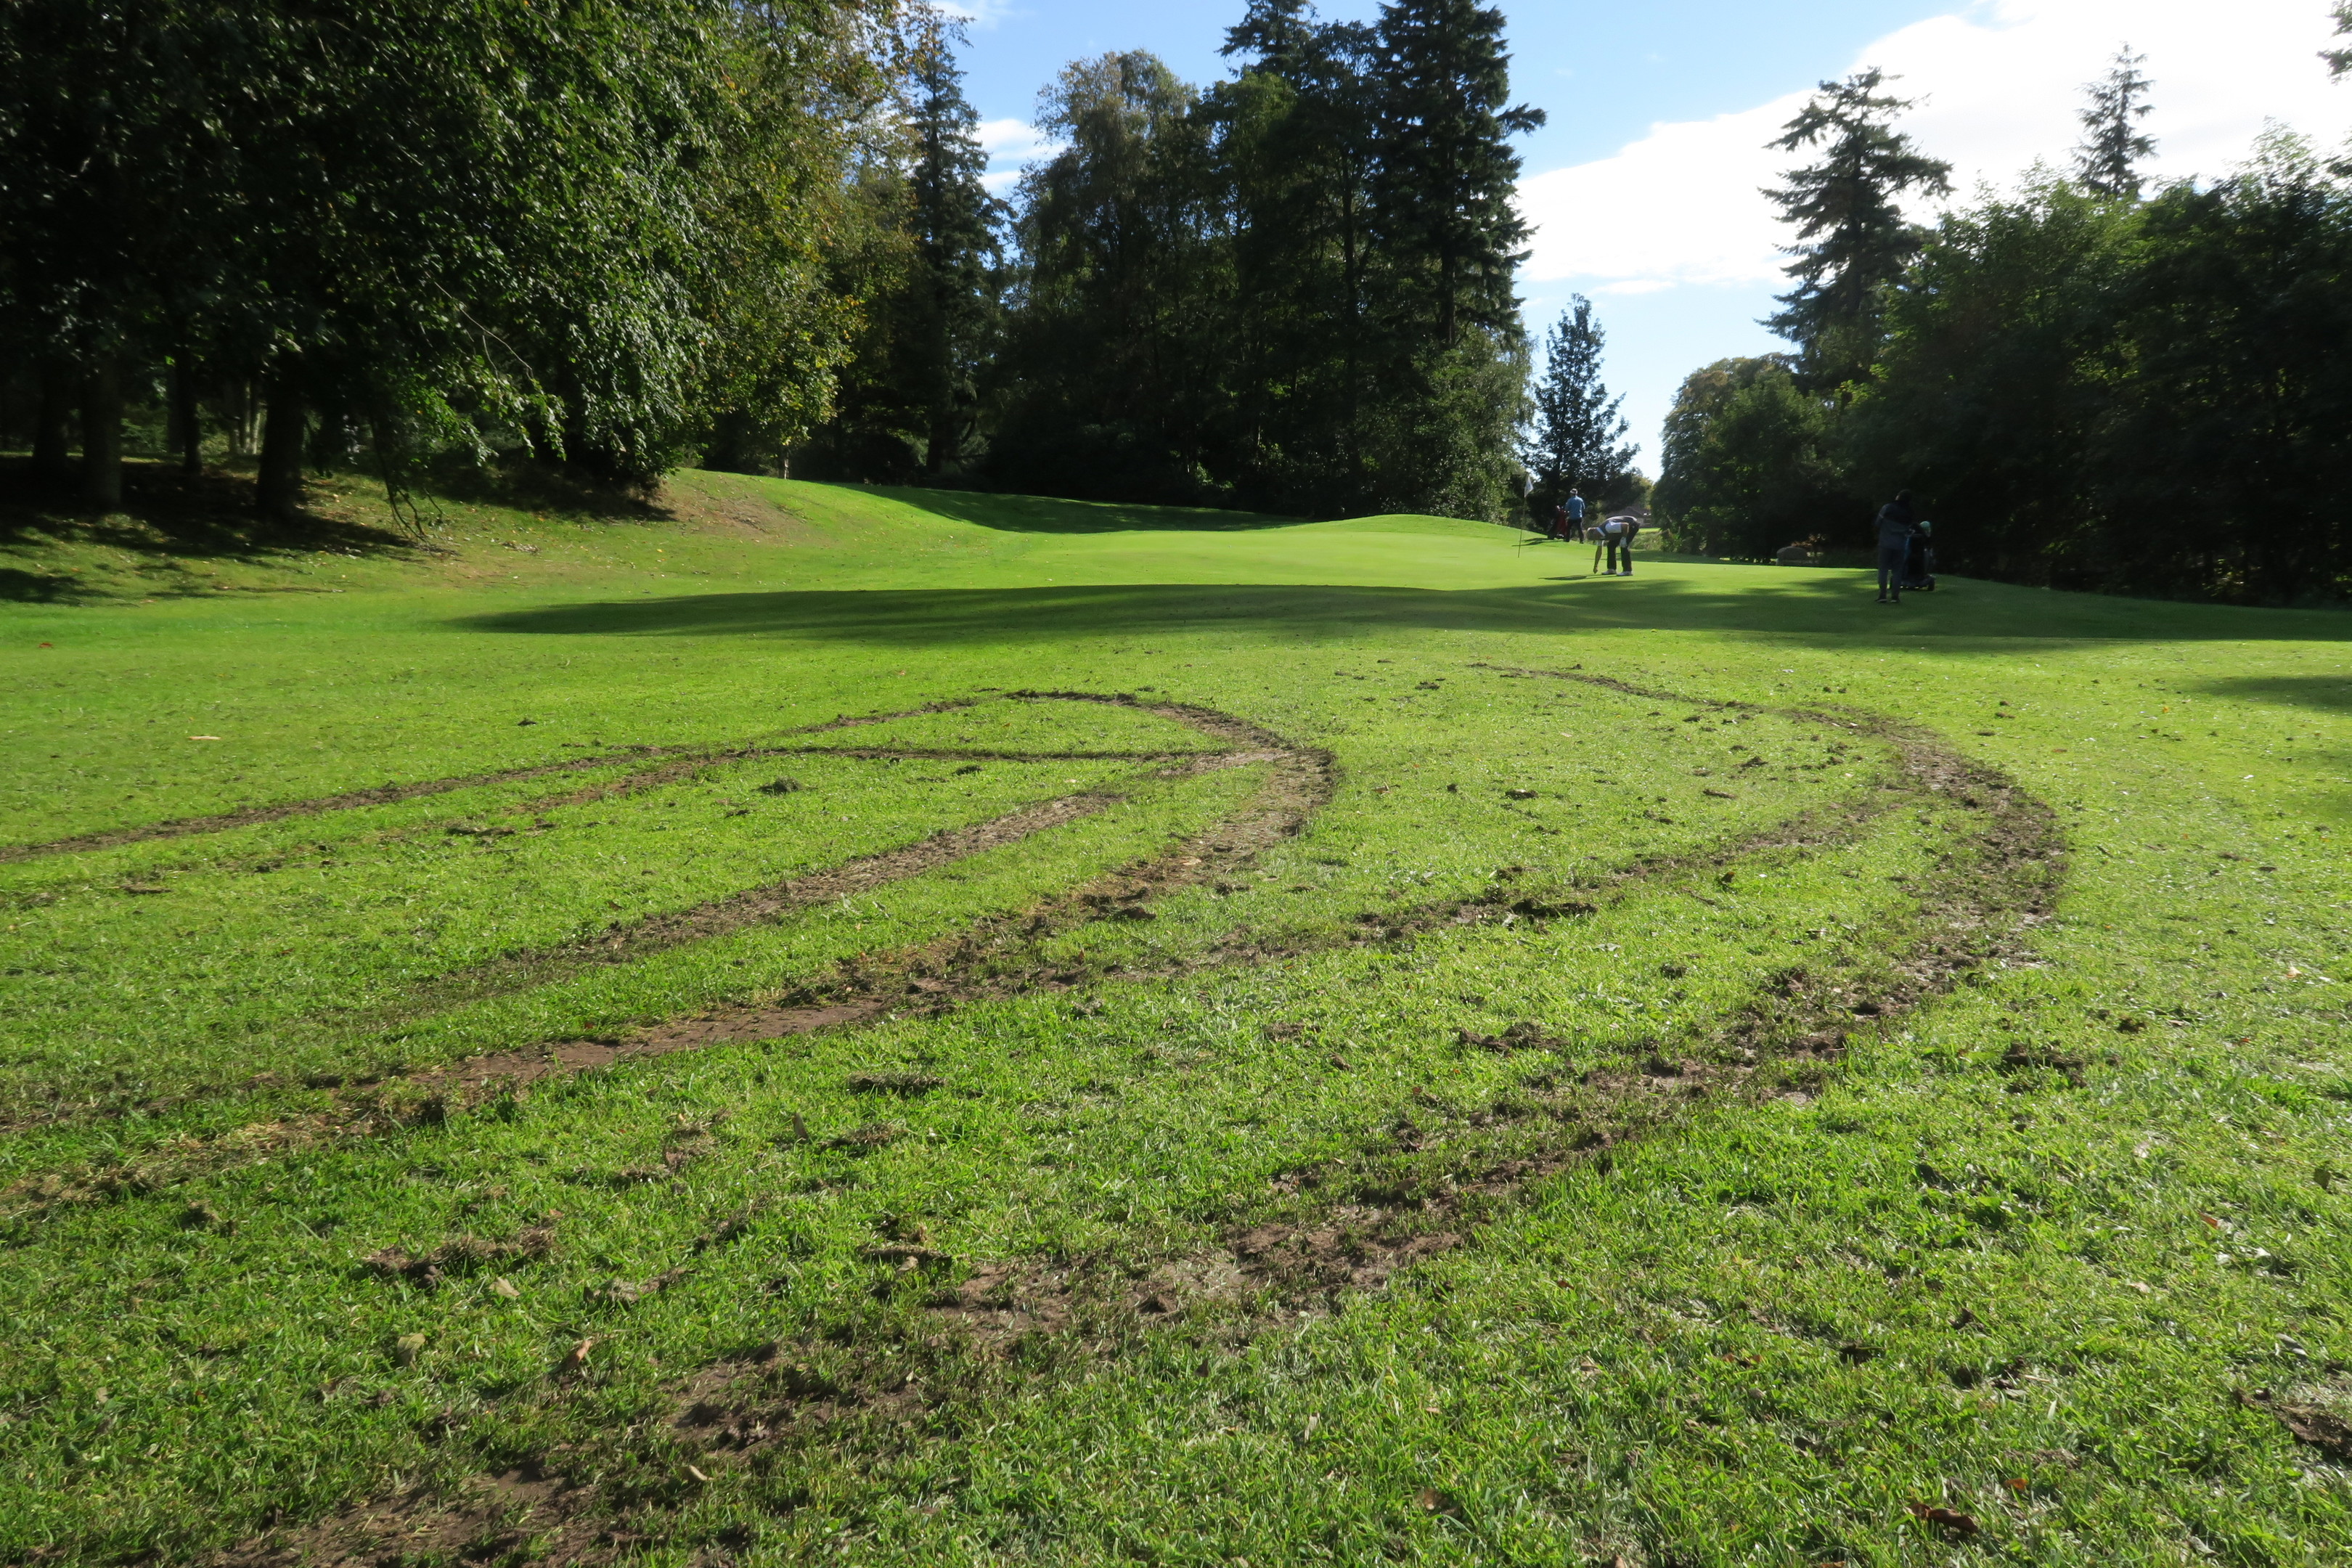 Some of the fairways were ripped up.